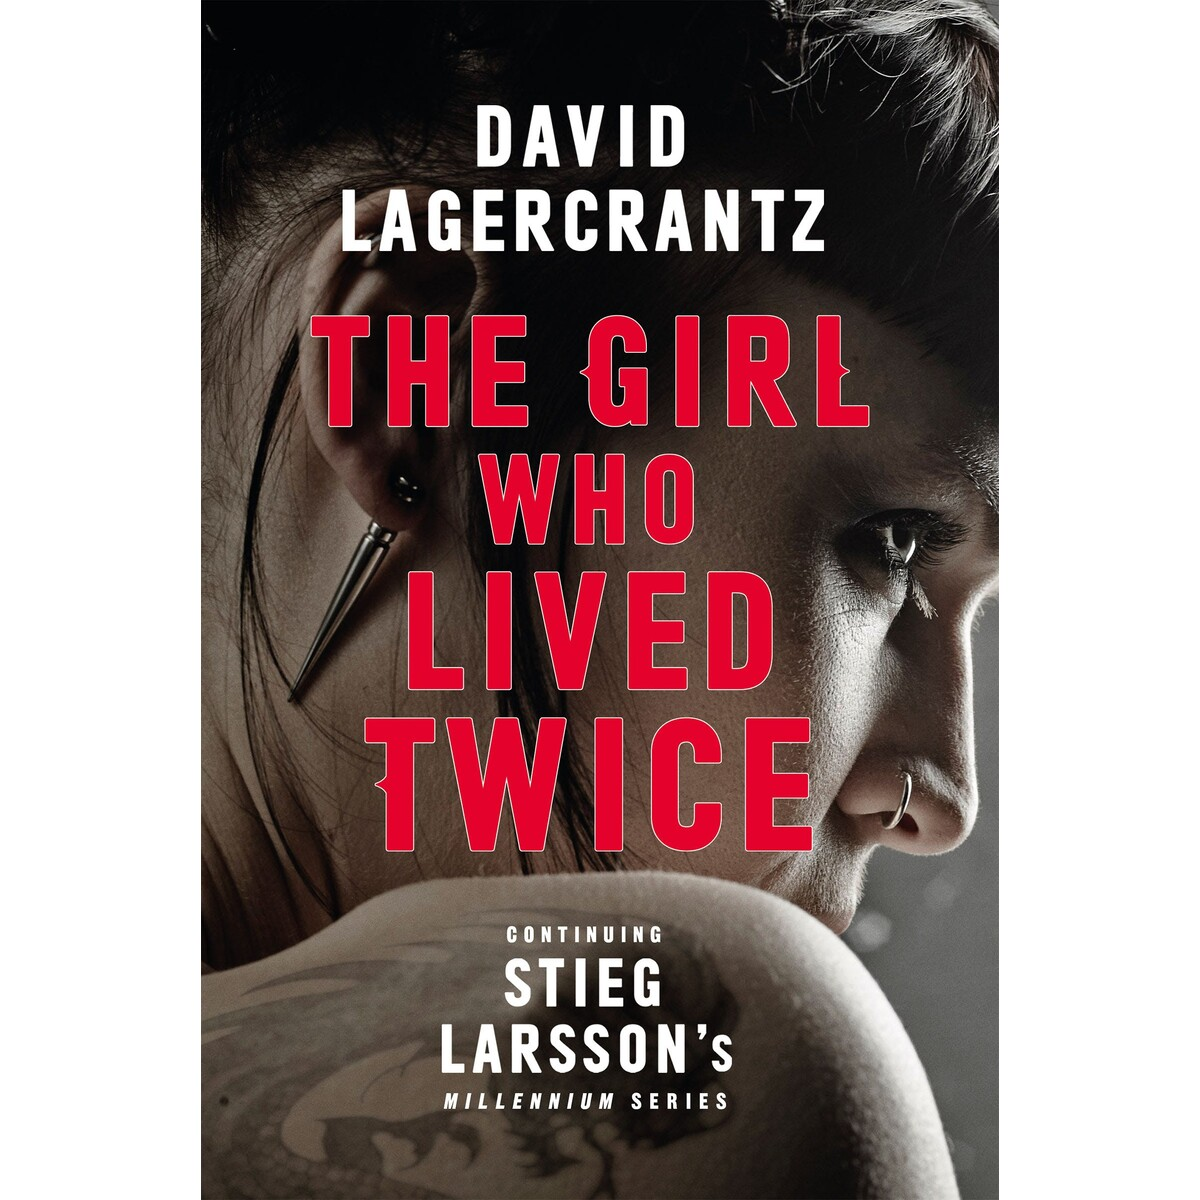 The Girl Who Lived Twice cover by David Lagercrantz